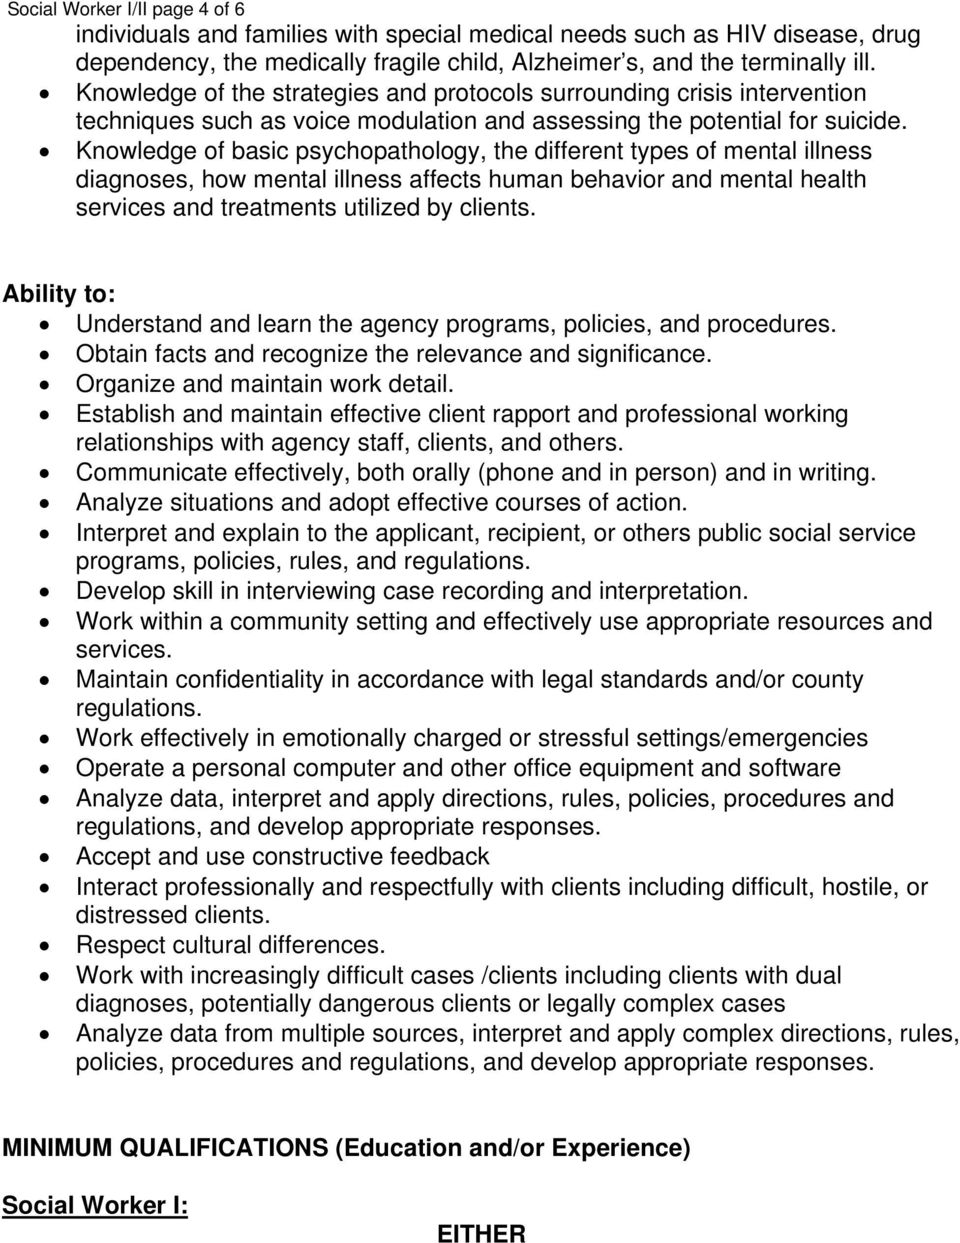 Knowledge of basic psychopathology, the different types of mental illness diagnoses, how mental illness affects human behavior and mental health services and treatments utilized by clients.